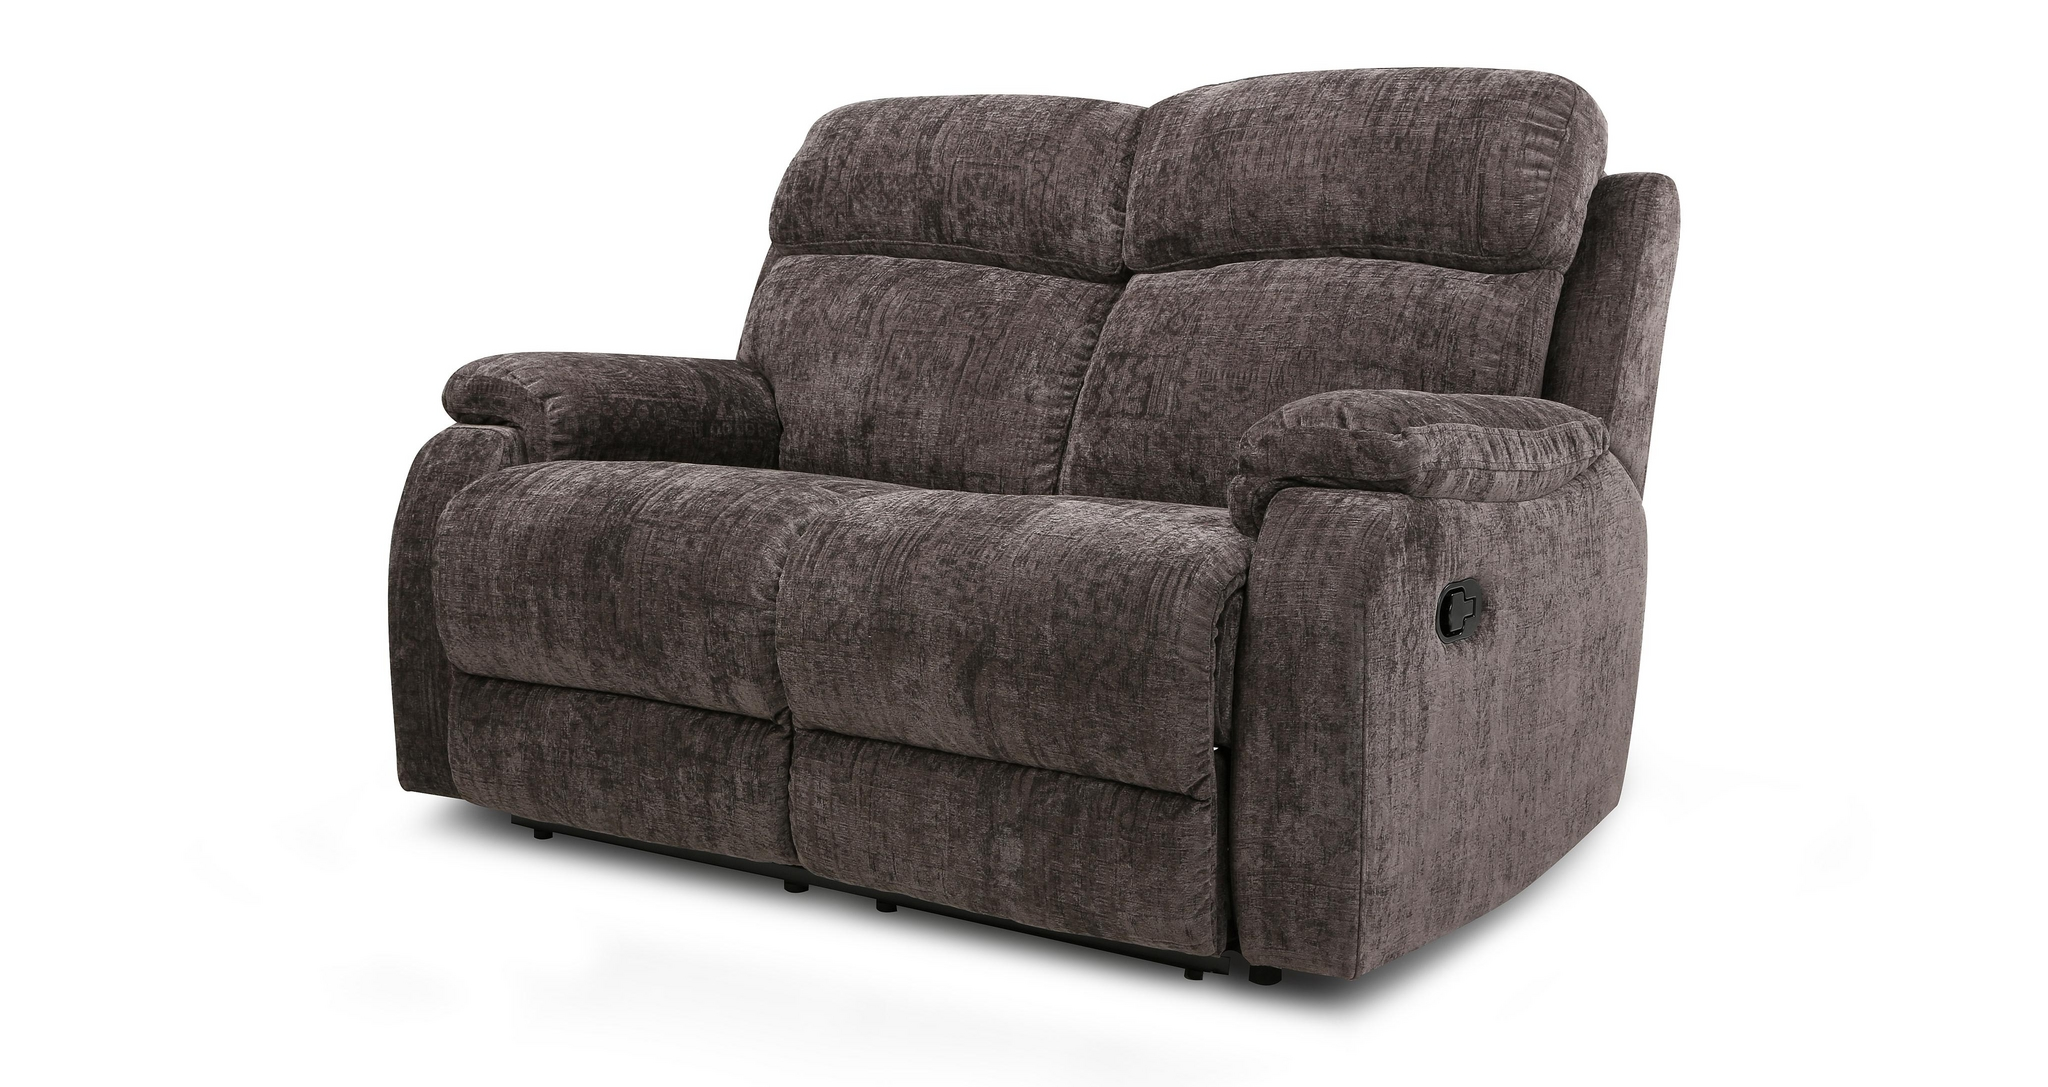 Dfs Barford Settee Nutmeg Fabric Couch 2 Seater Manual